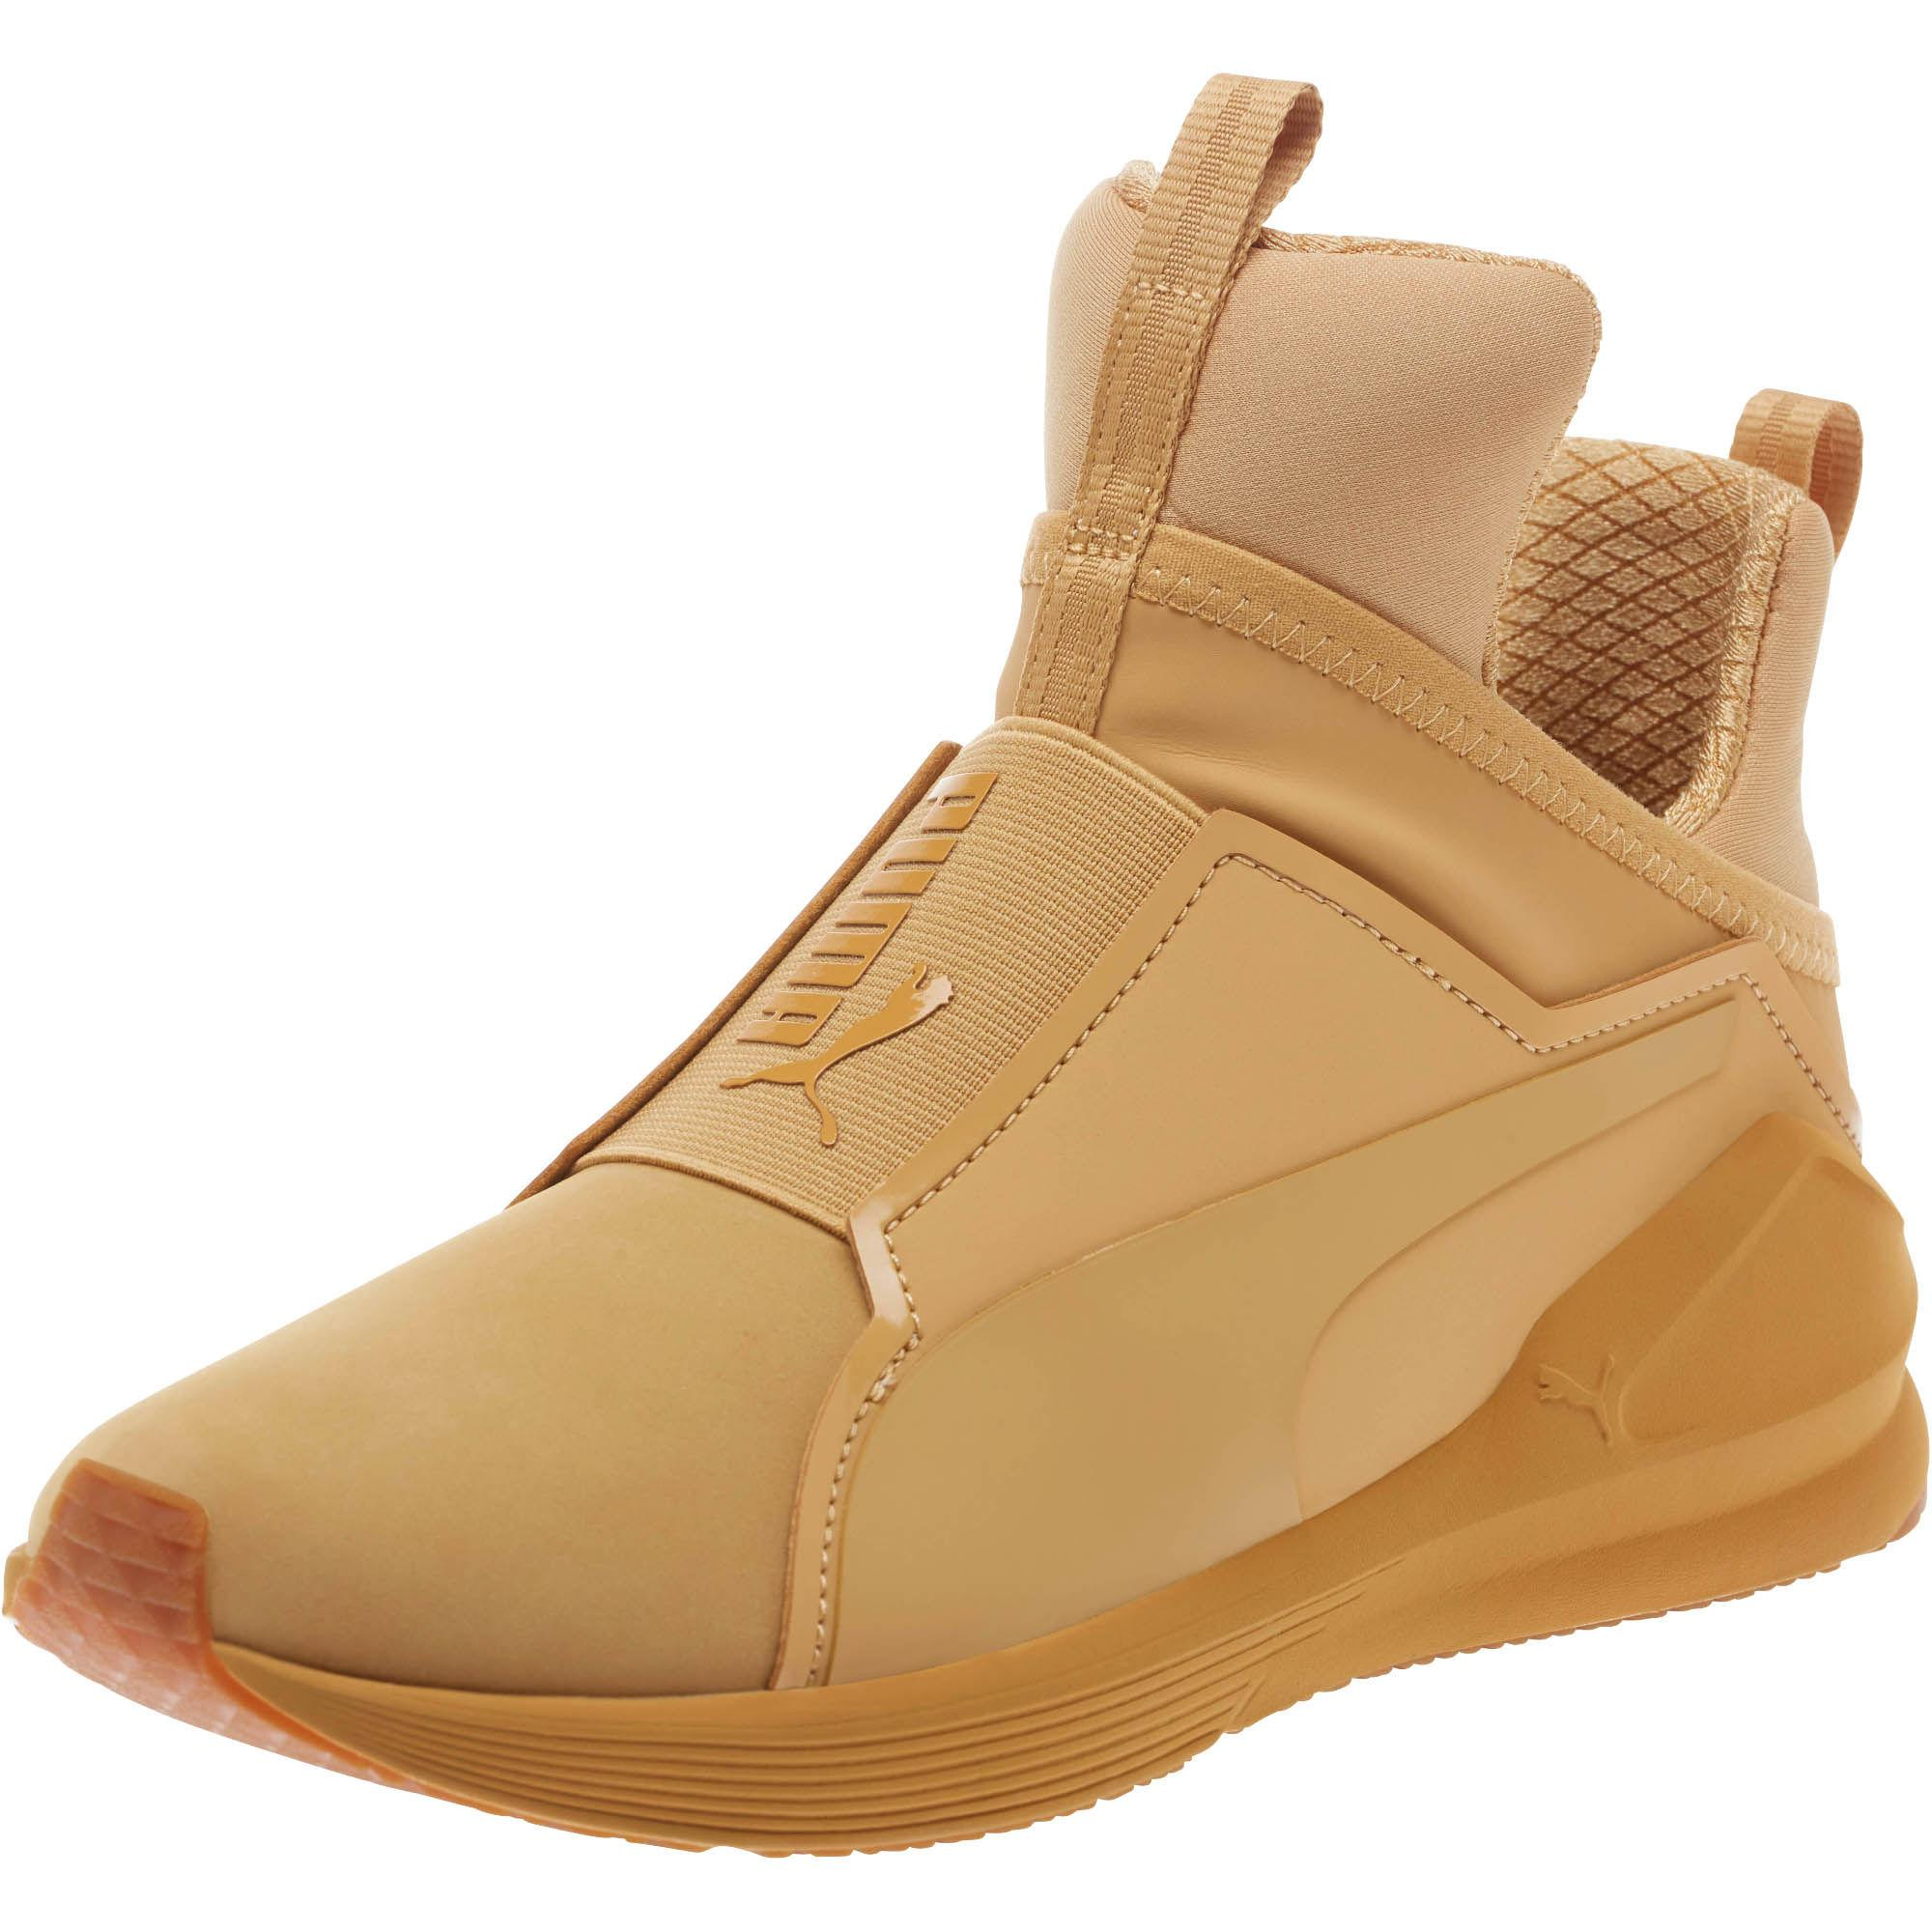 8cd2f36e1f82de Lyst - PUMA Fierce Nubuck Naturals Women s Training Shoes in Brown